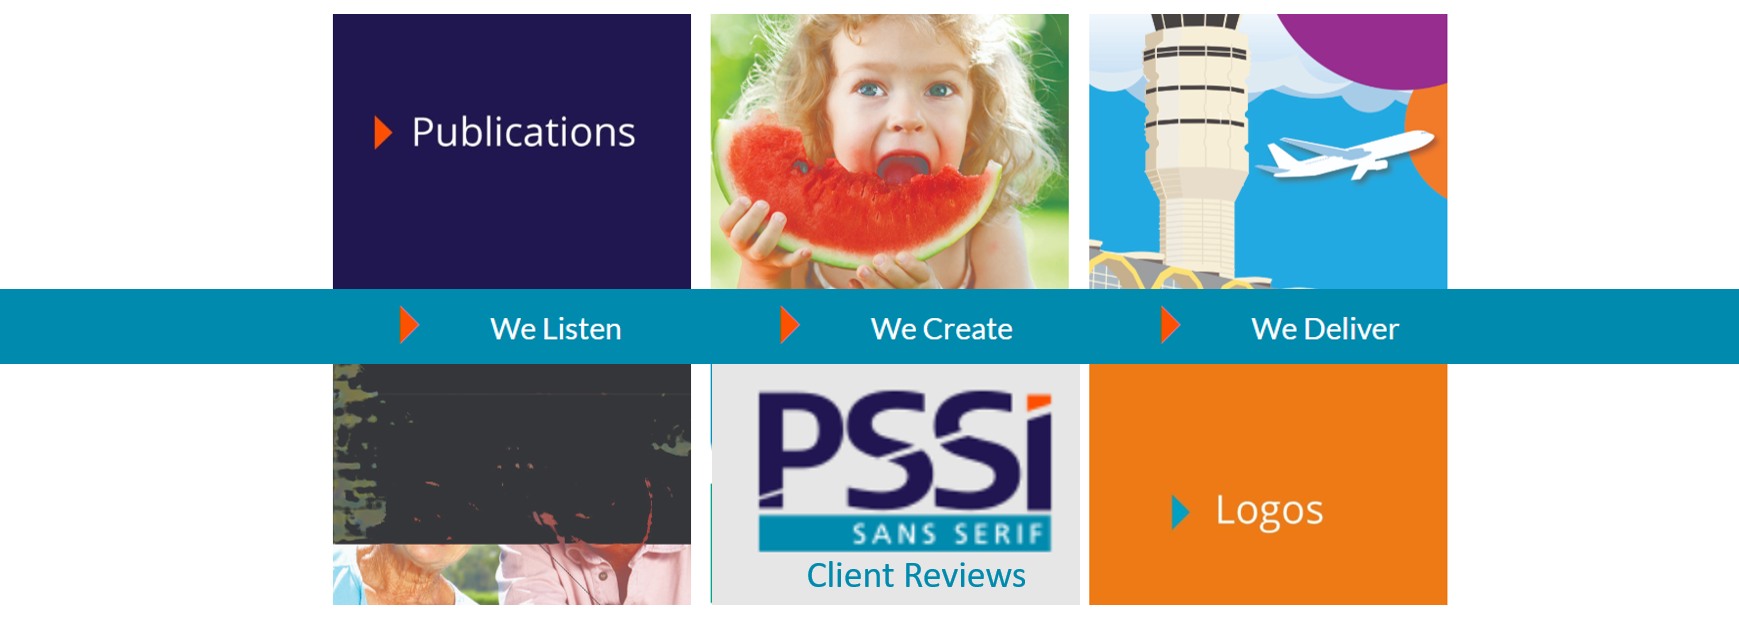 PSSI We Print reviews | Printing Services at 2808 Merrilee Dr - Fairfax VA